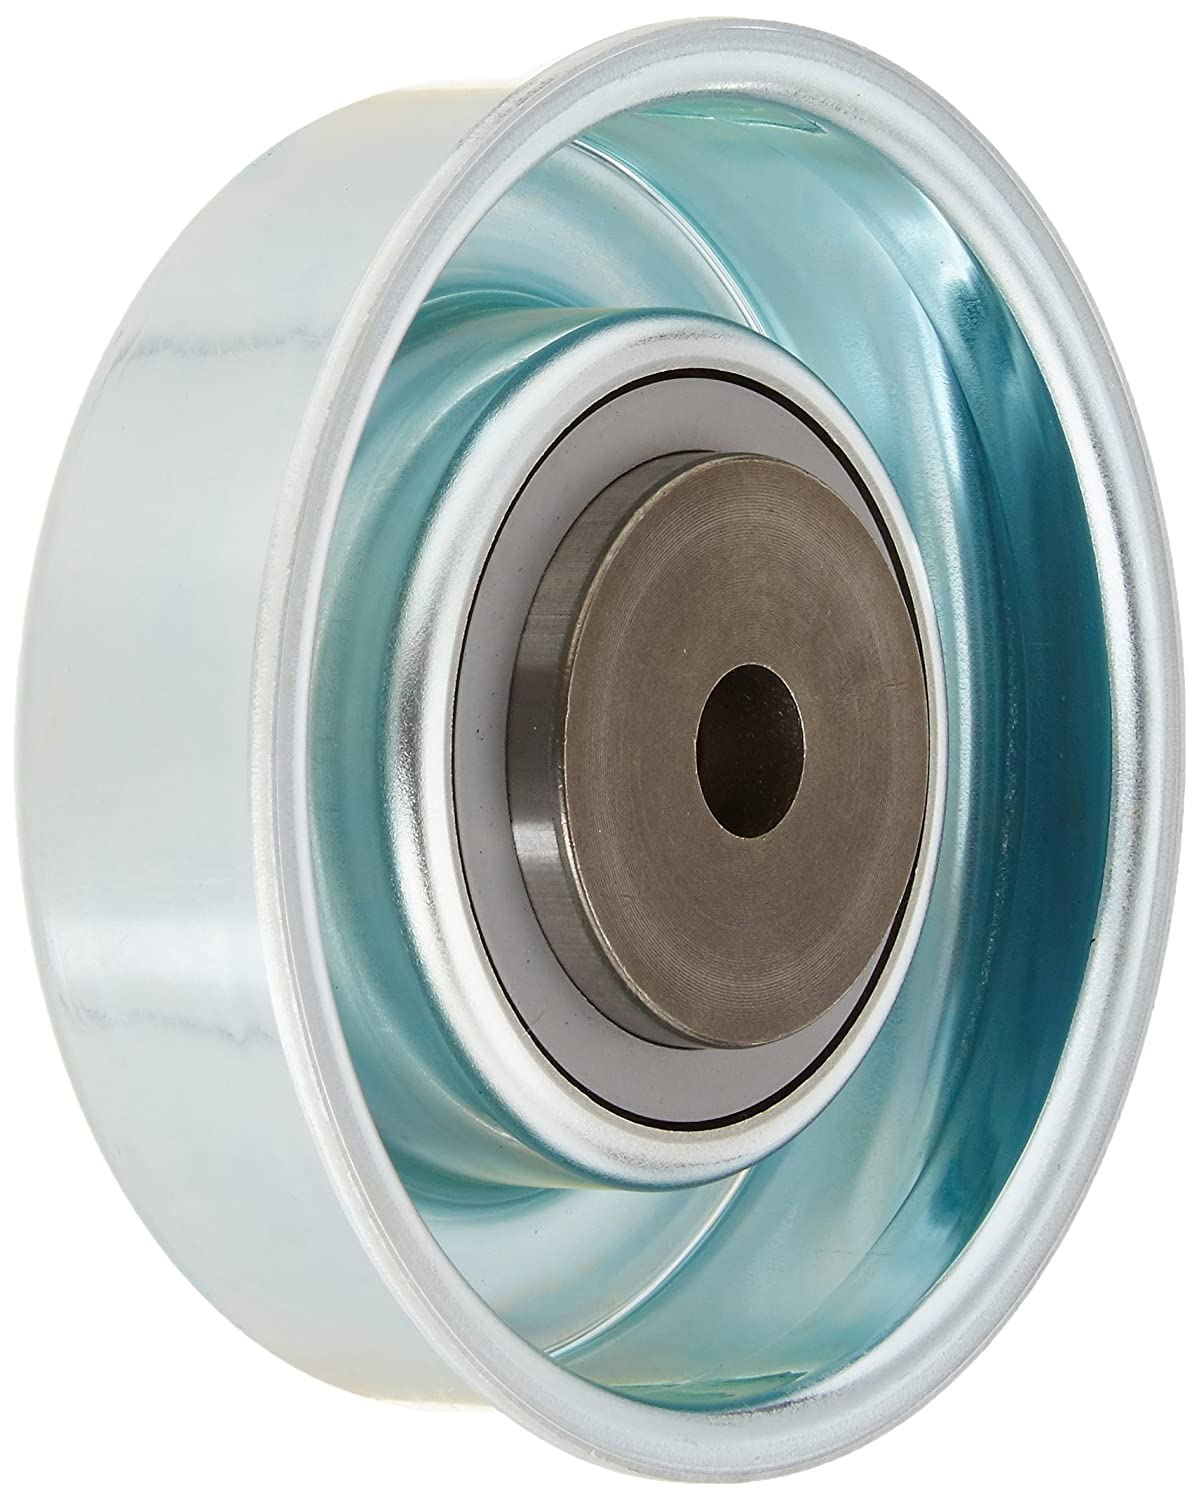 Dayco 89533 Idler Pulley